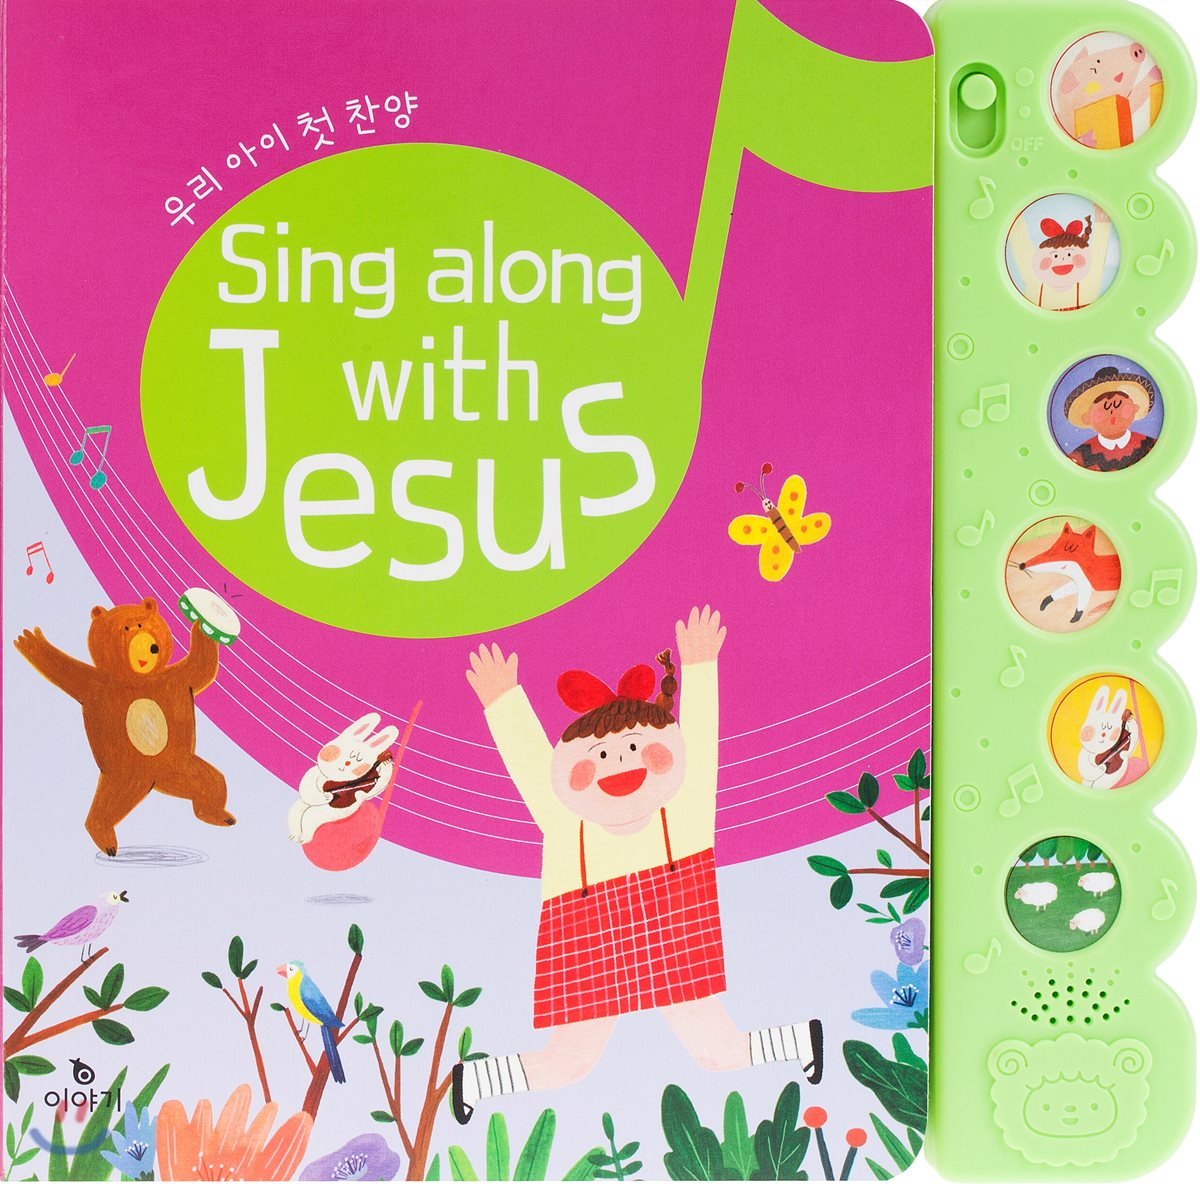 Sing along with Jesus